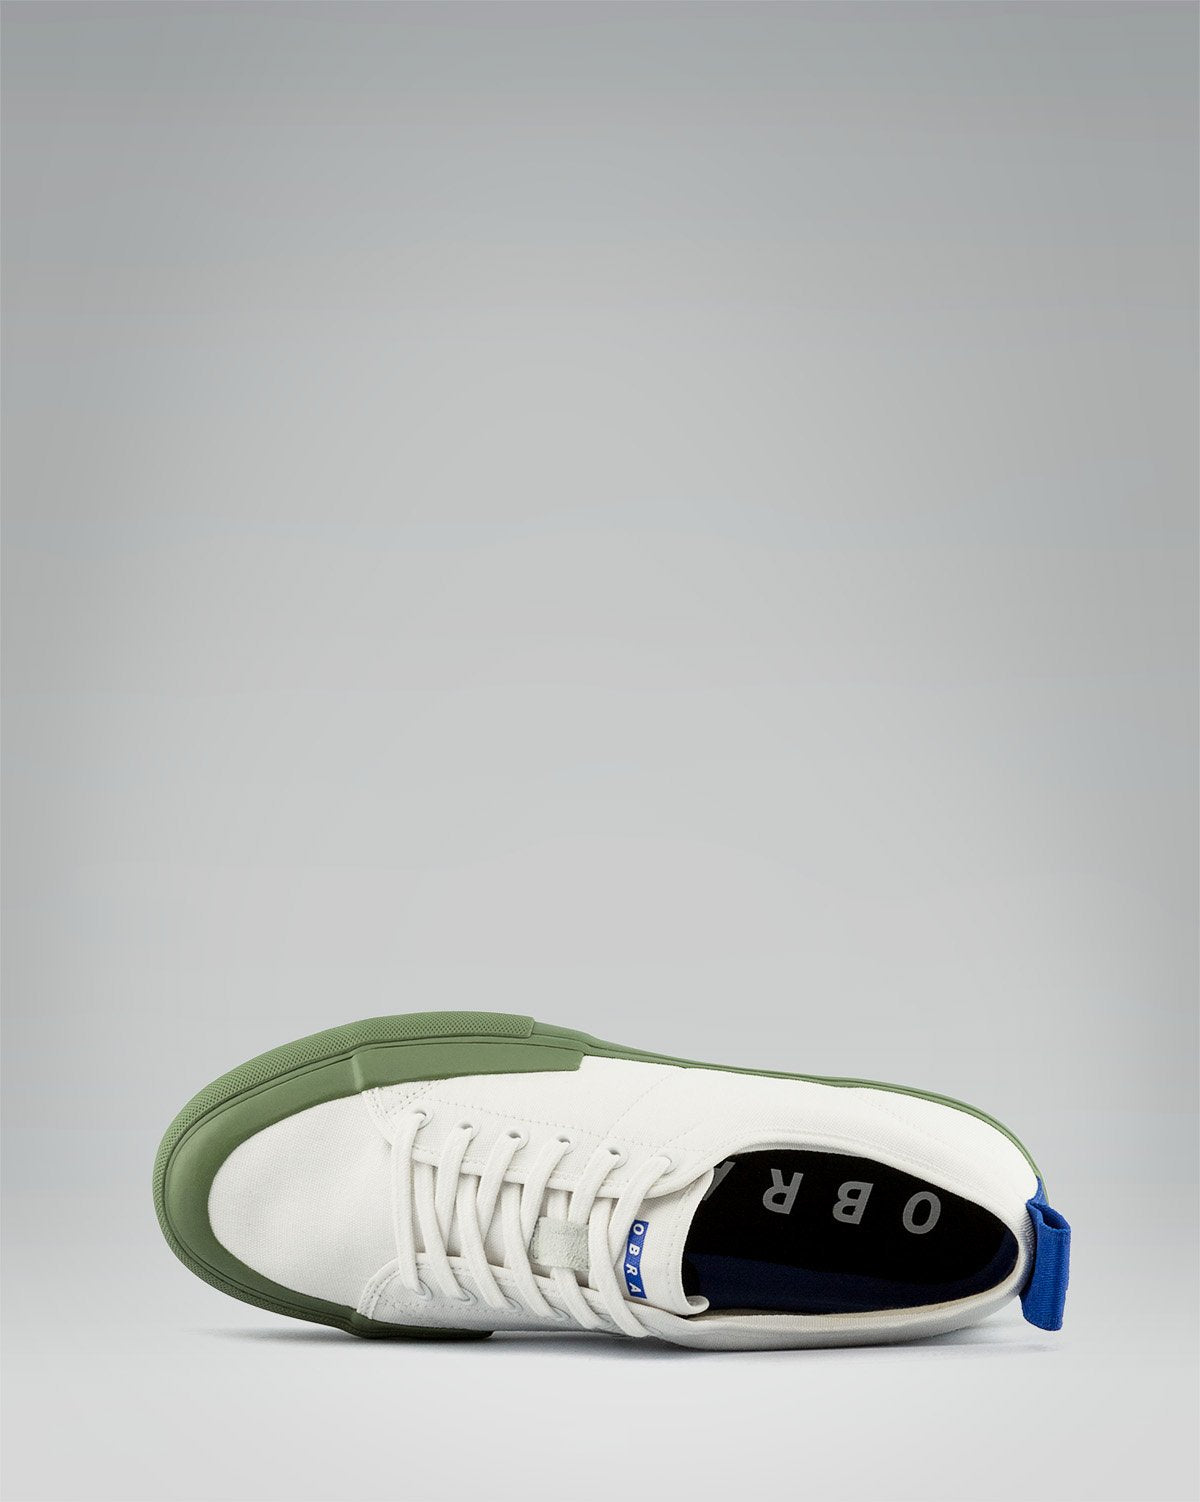 240 CANVAS LOW WRAP TOE<br />White/Sage/OBRA Blue